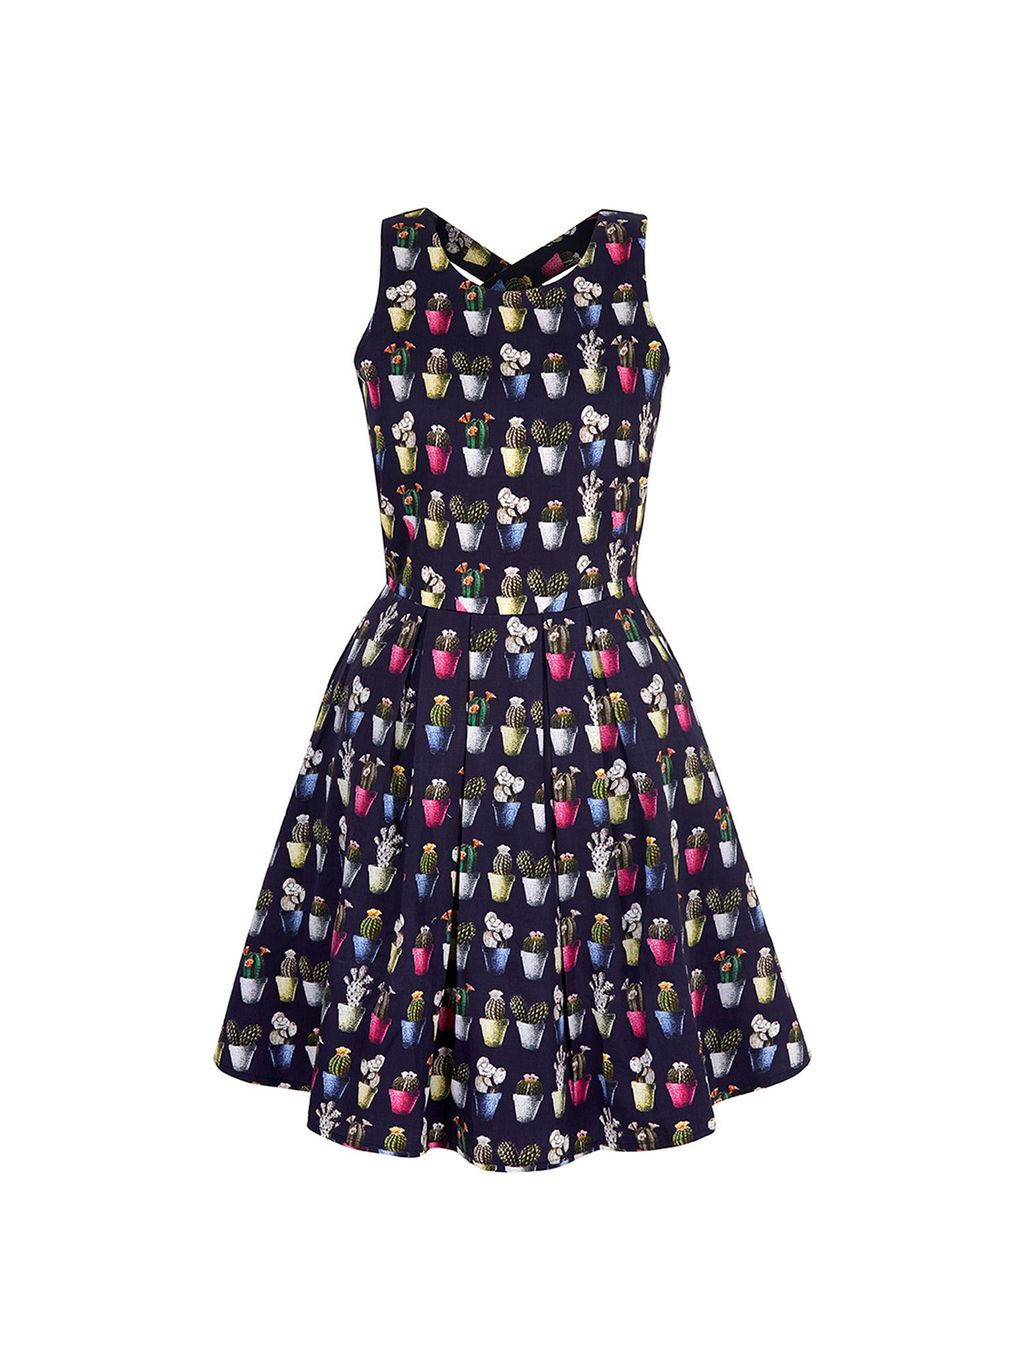 Cactus Print Skater Dress, Navy - style: tea dress; length: mid thigh; neckline: round neck; fit: fitted at waist; sleeve style: sleeveless; secondary colour: hot pink; predominant colour: navy; occasions: evening; fibres: cotton - 100%; sleeve length: sleeveless; texture group: cotton feel fabrics; pattern type: fabric; pattern size: big & busy; pattern: patterned/print; season: s/s 2016; wardrobe: event